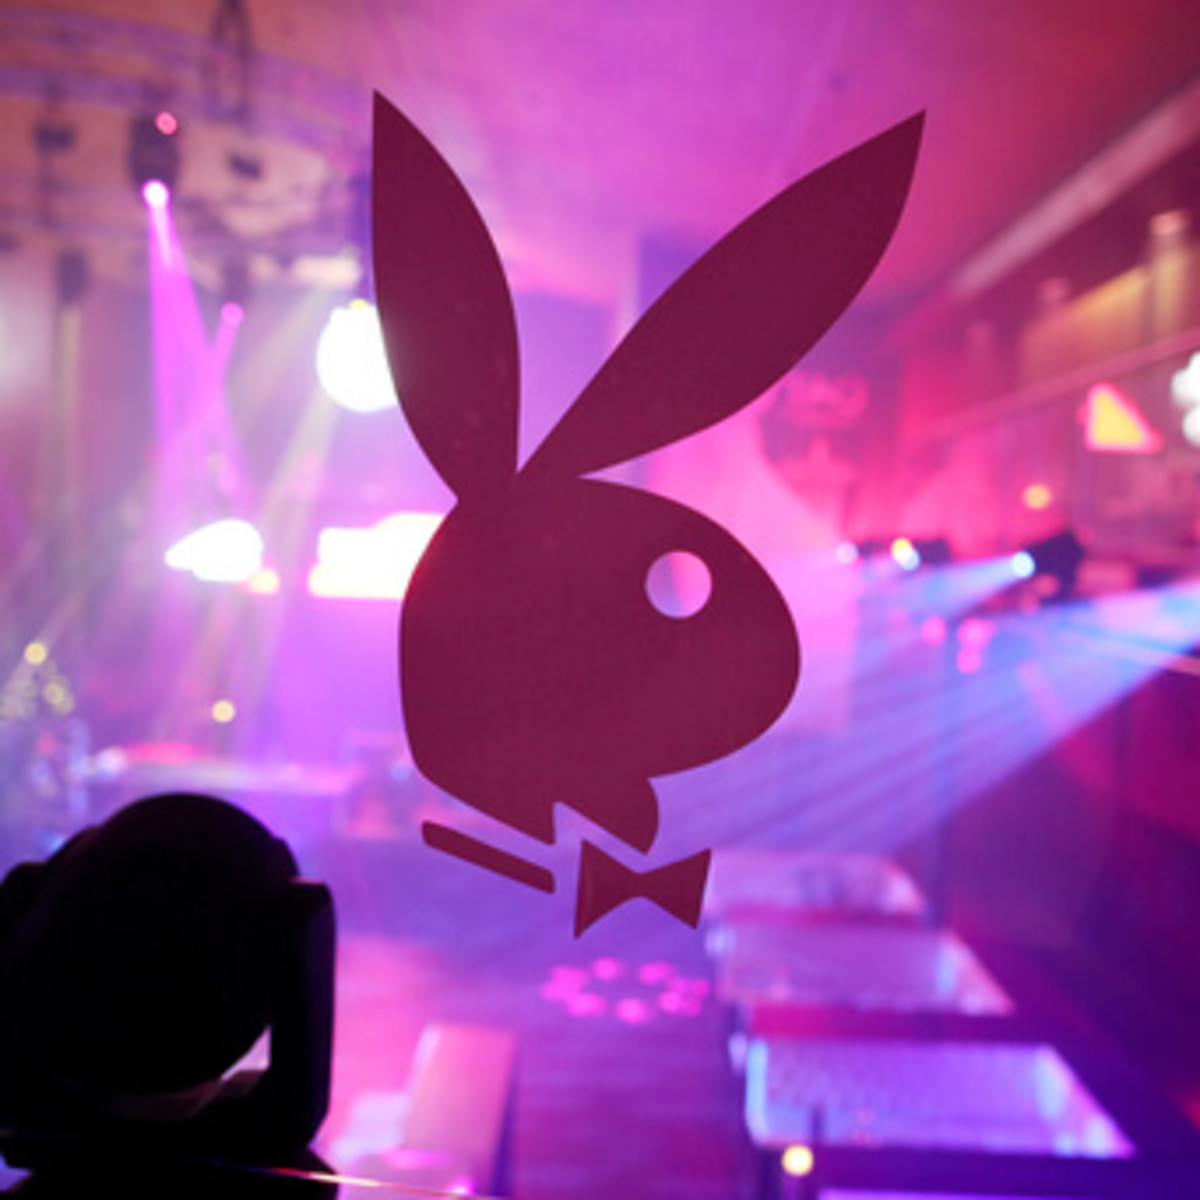 Houston, Playboy and Tao Super Bowl Party, Jan 2017, playboy logo